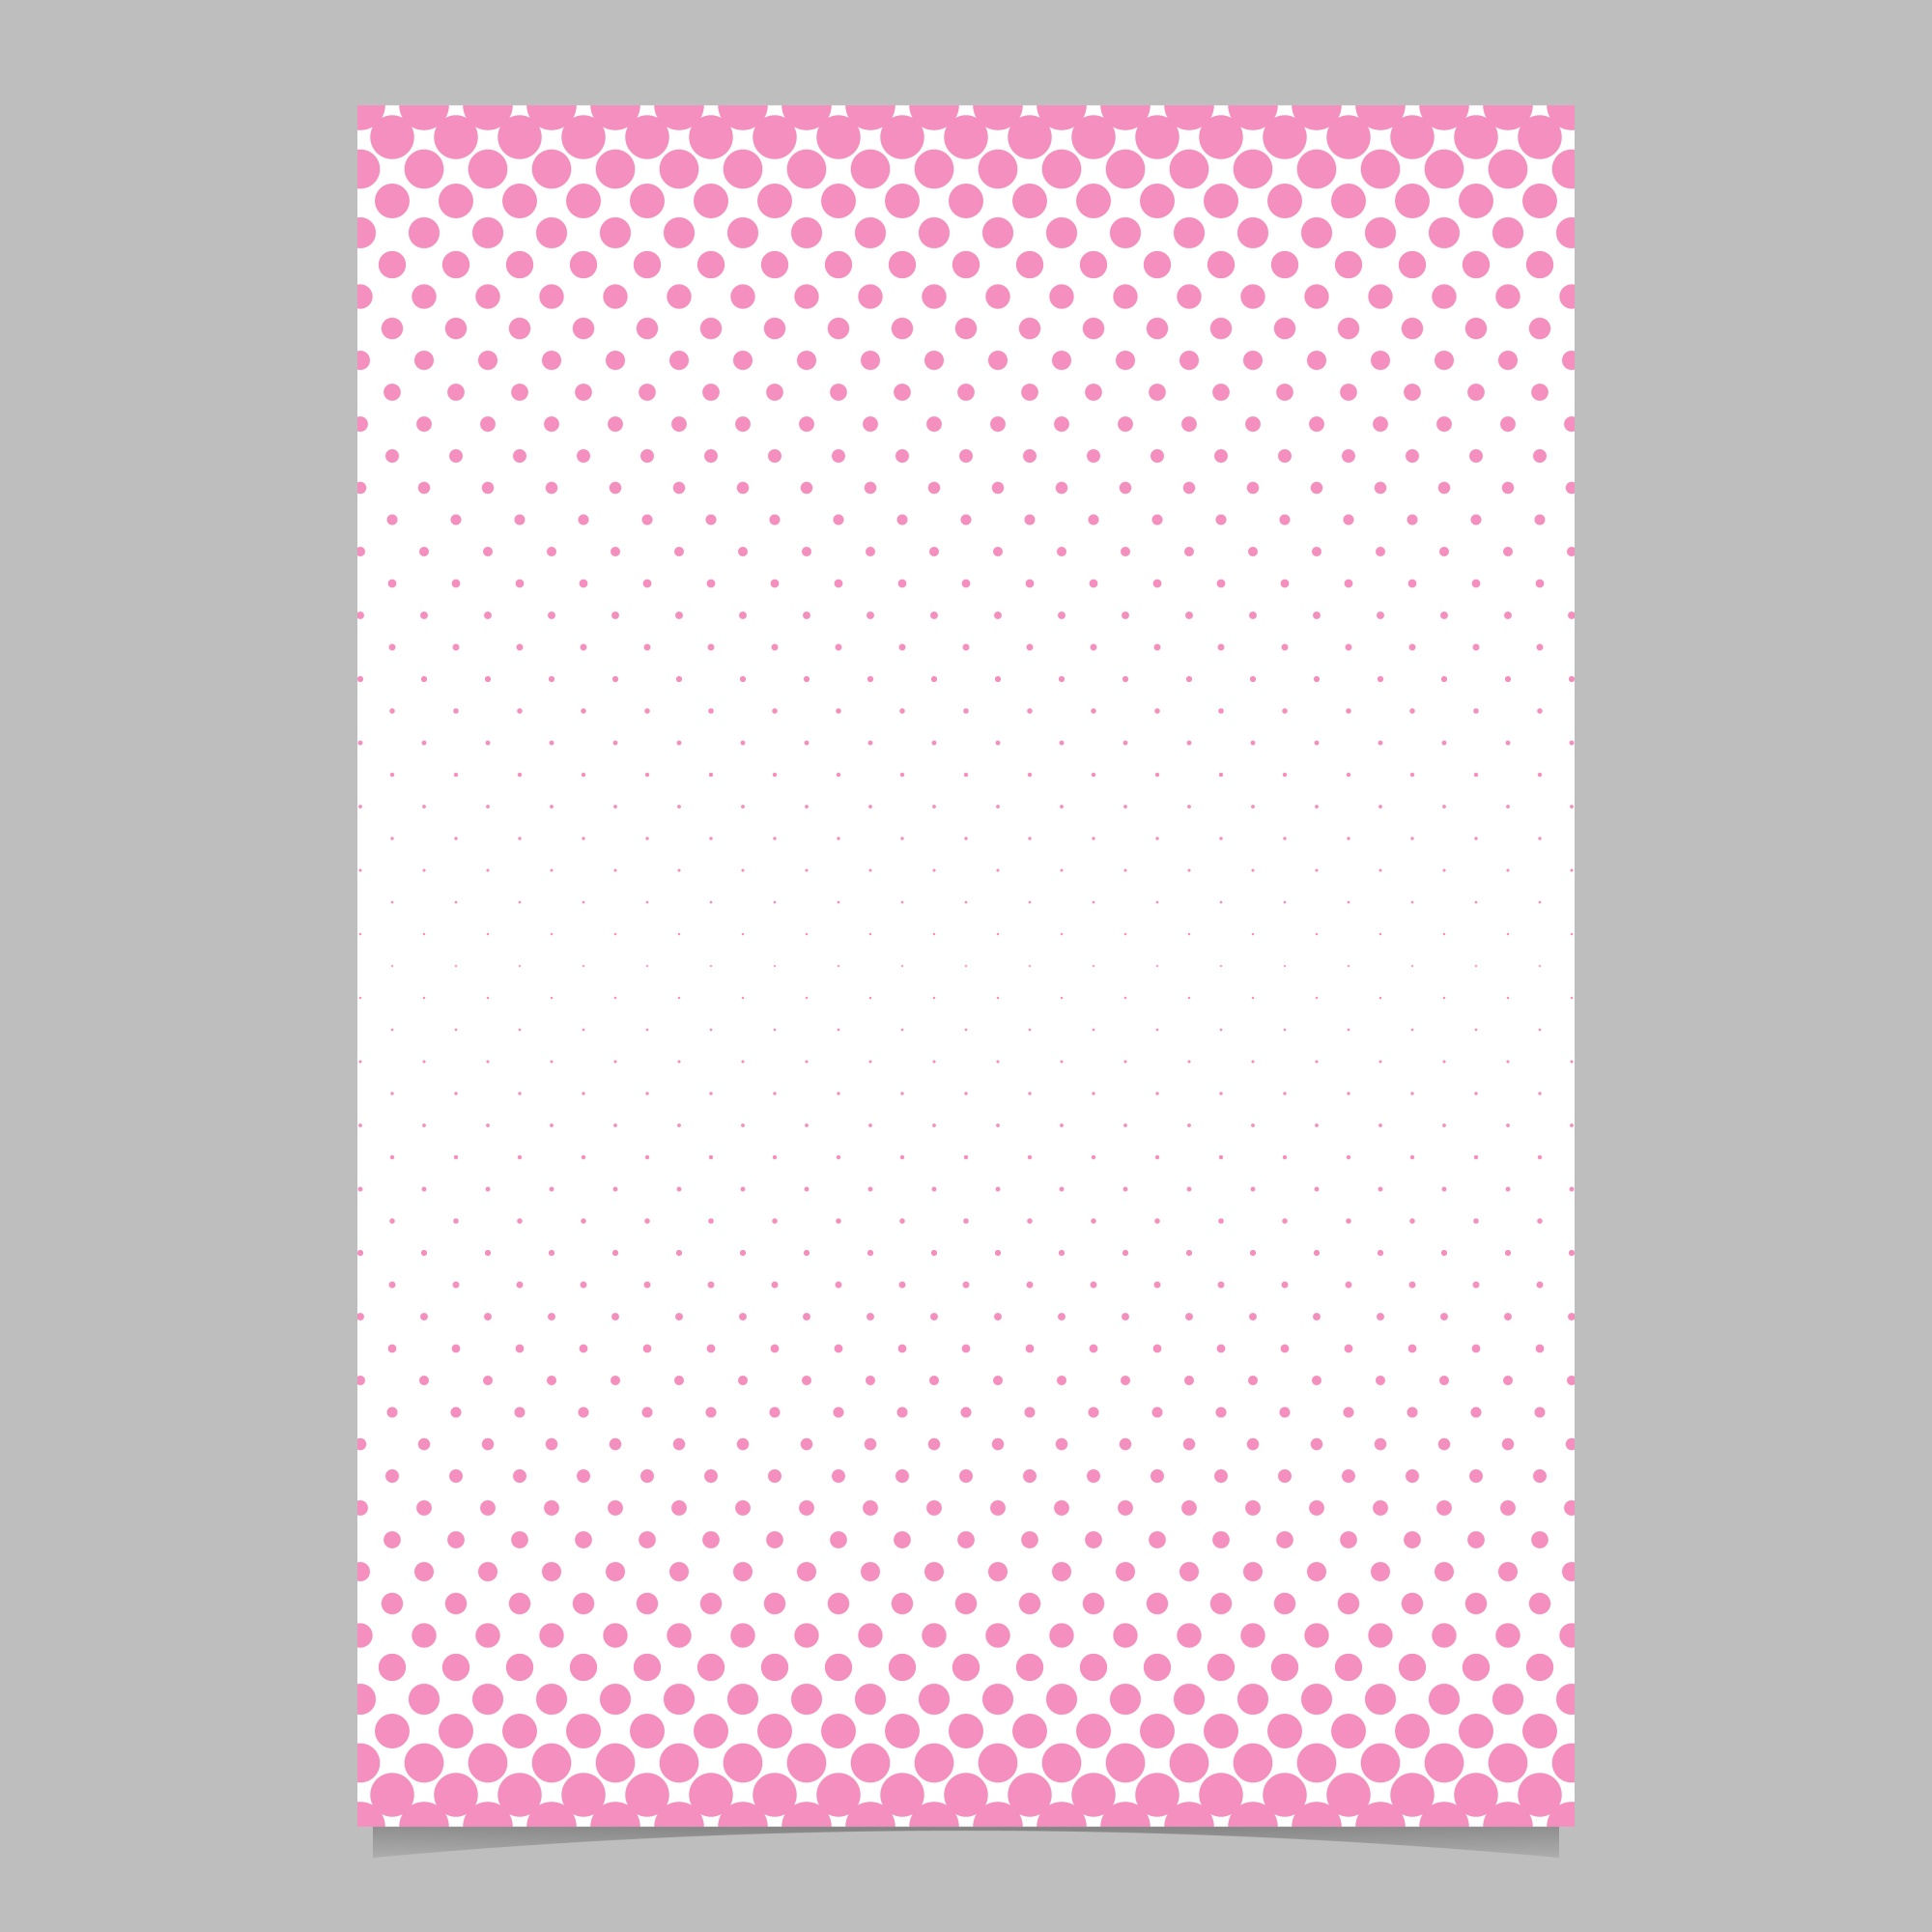 Simple abstract halftone dot pattern brochure design template - vector document background illustration with circle pattern